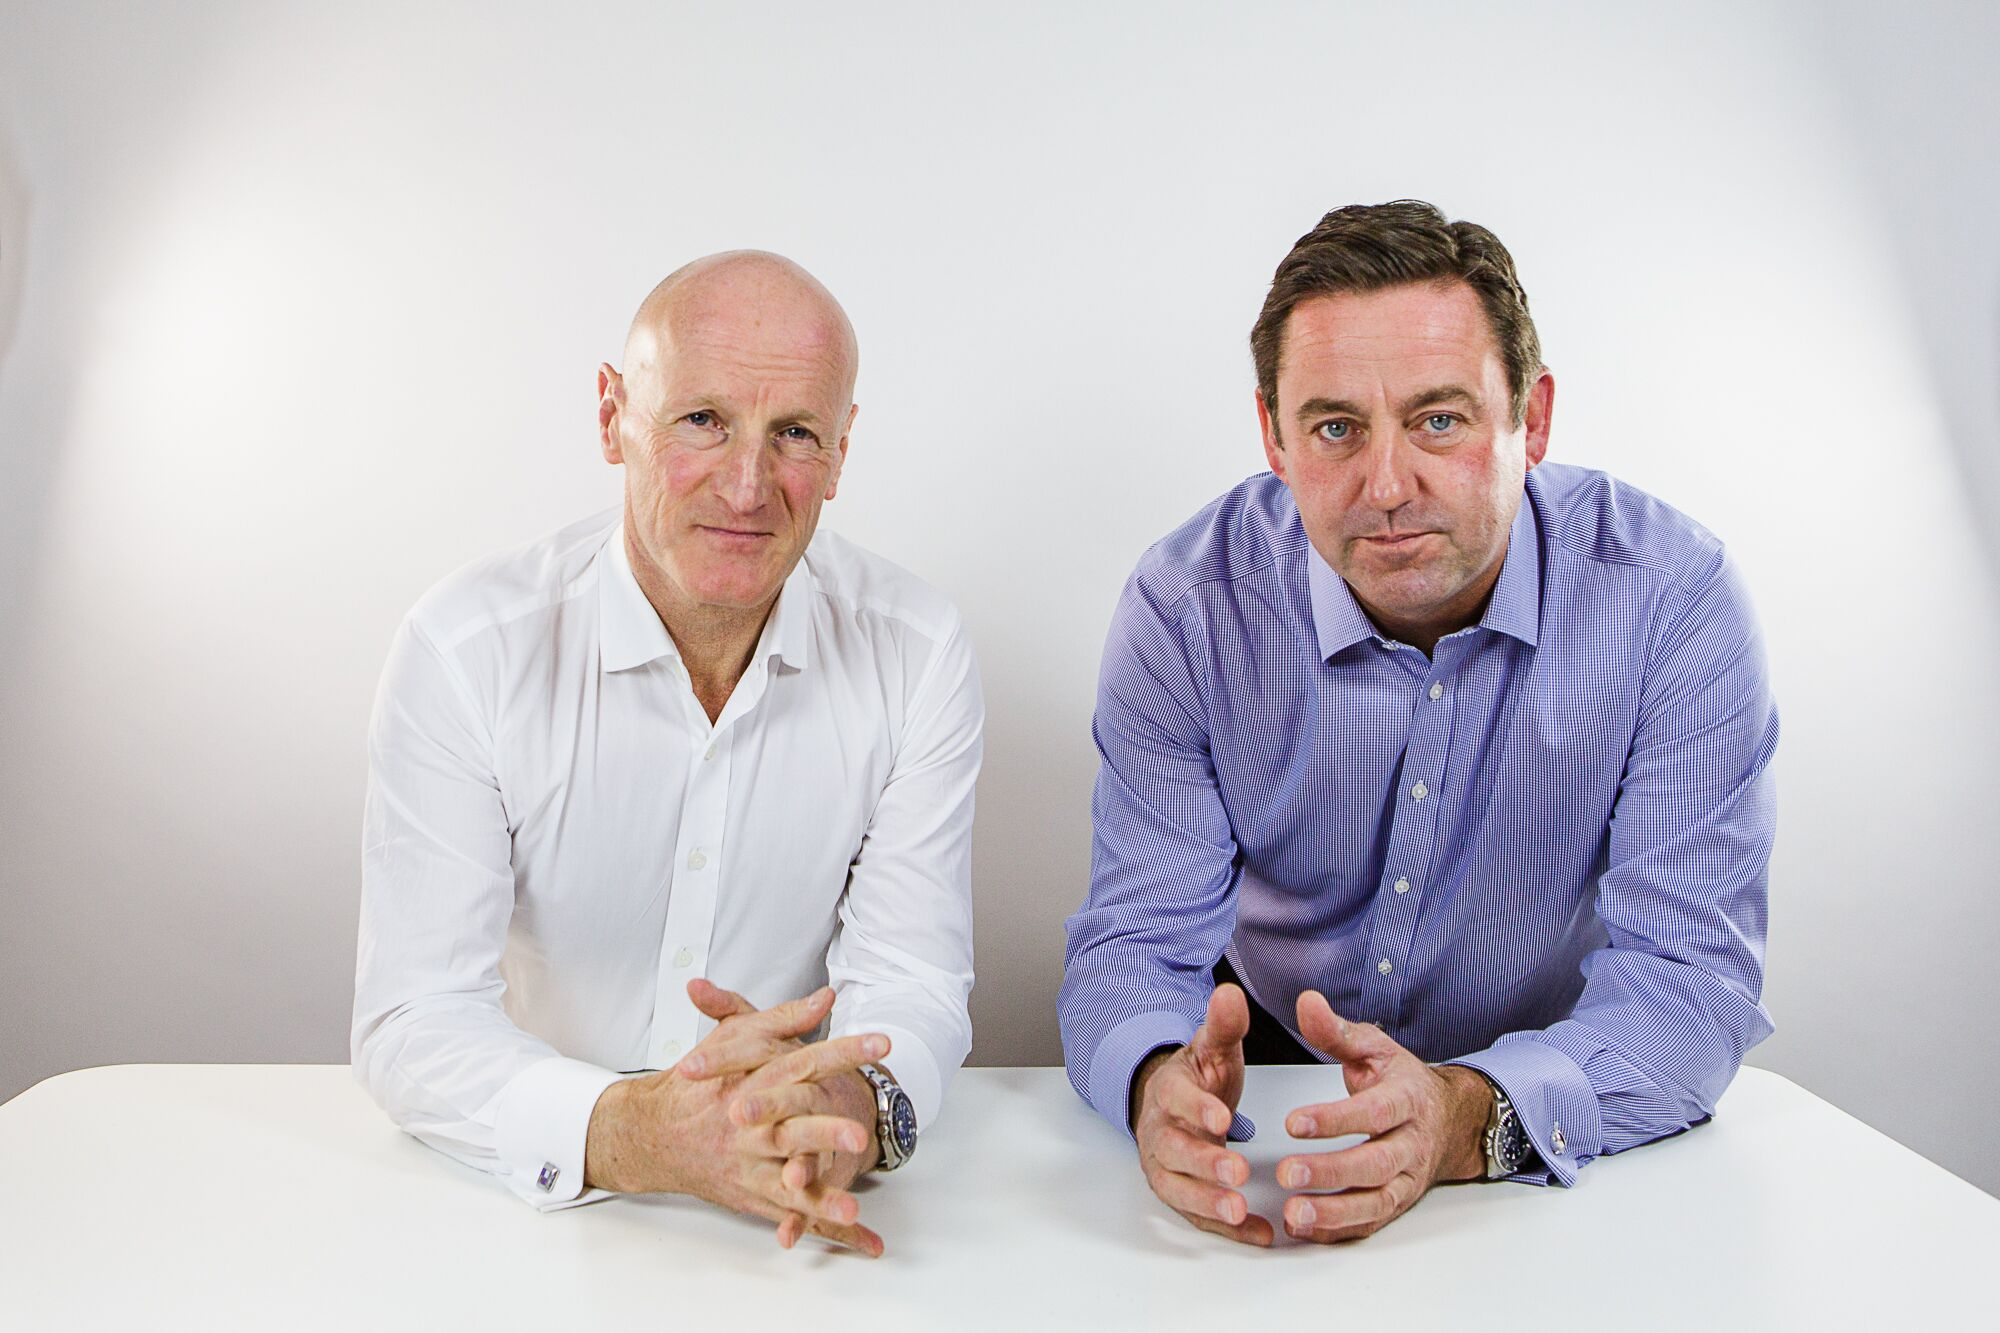 Managing Parter at Darbys, Simon McCrum (left), and David Beech, CEO of Bondholder Knights Professional Services.